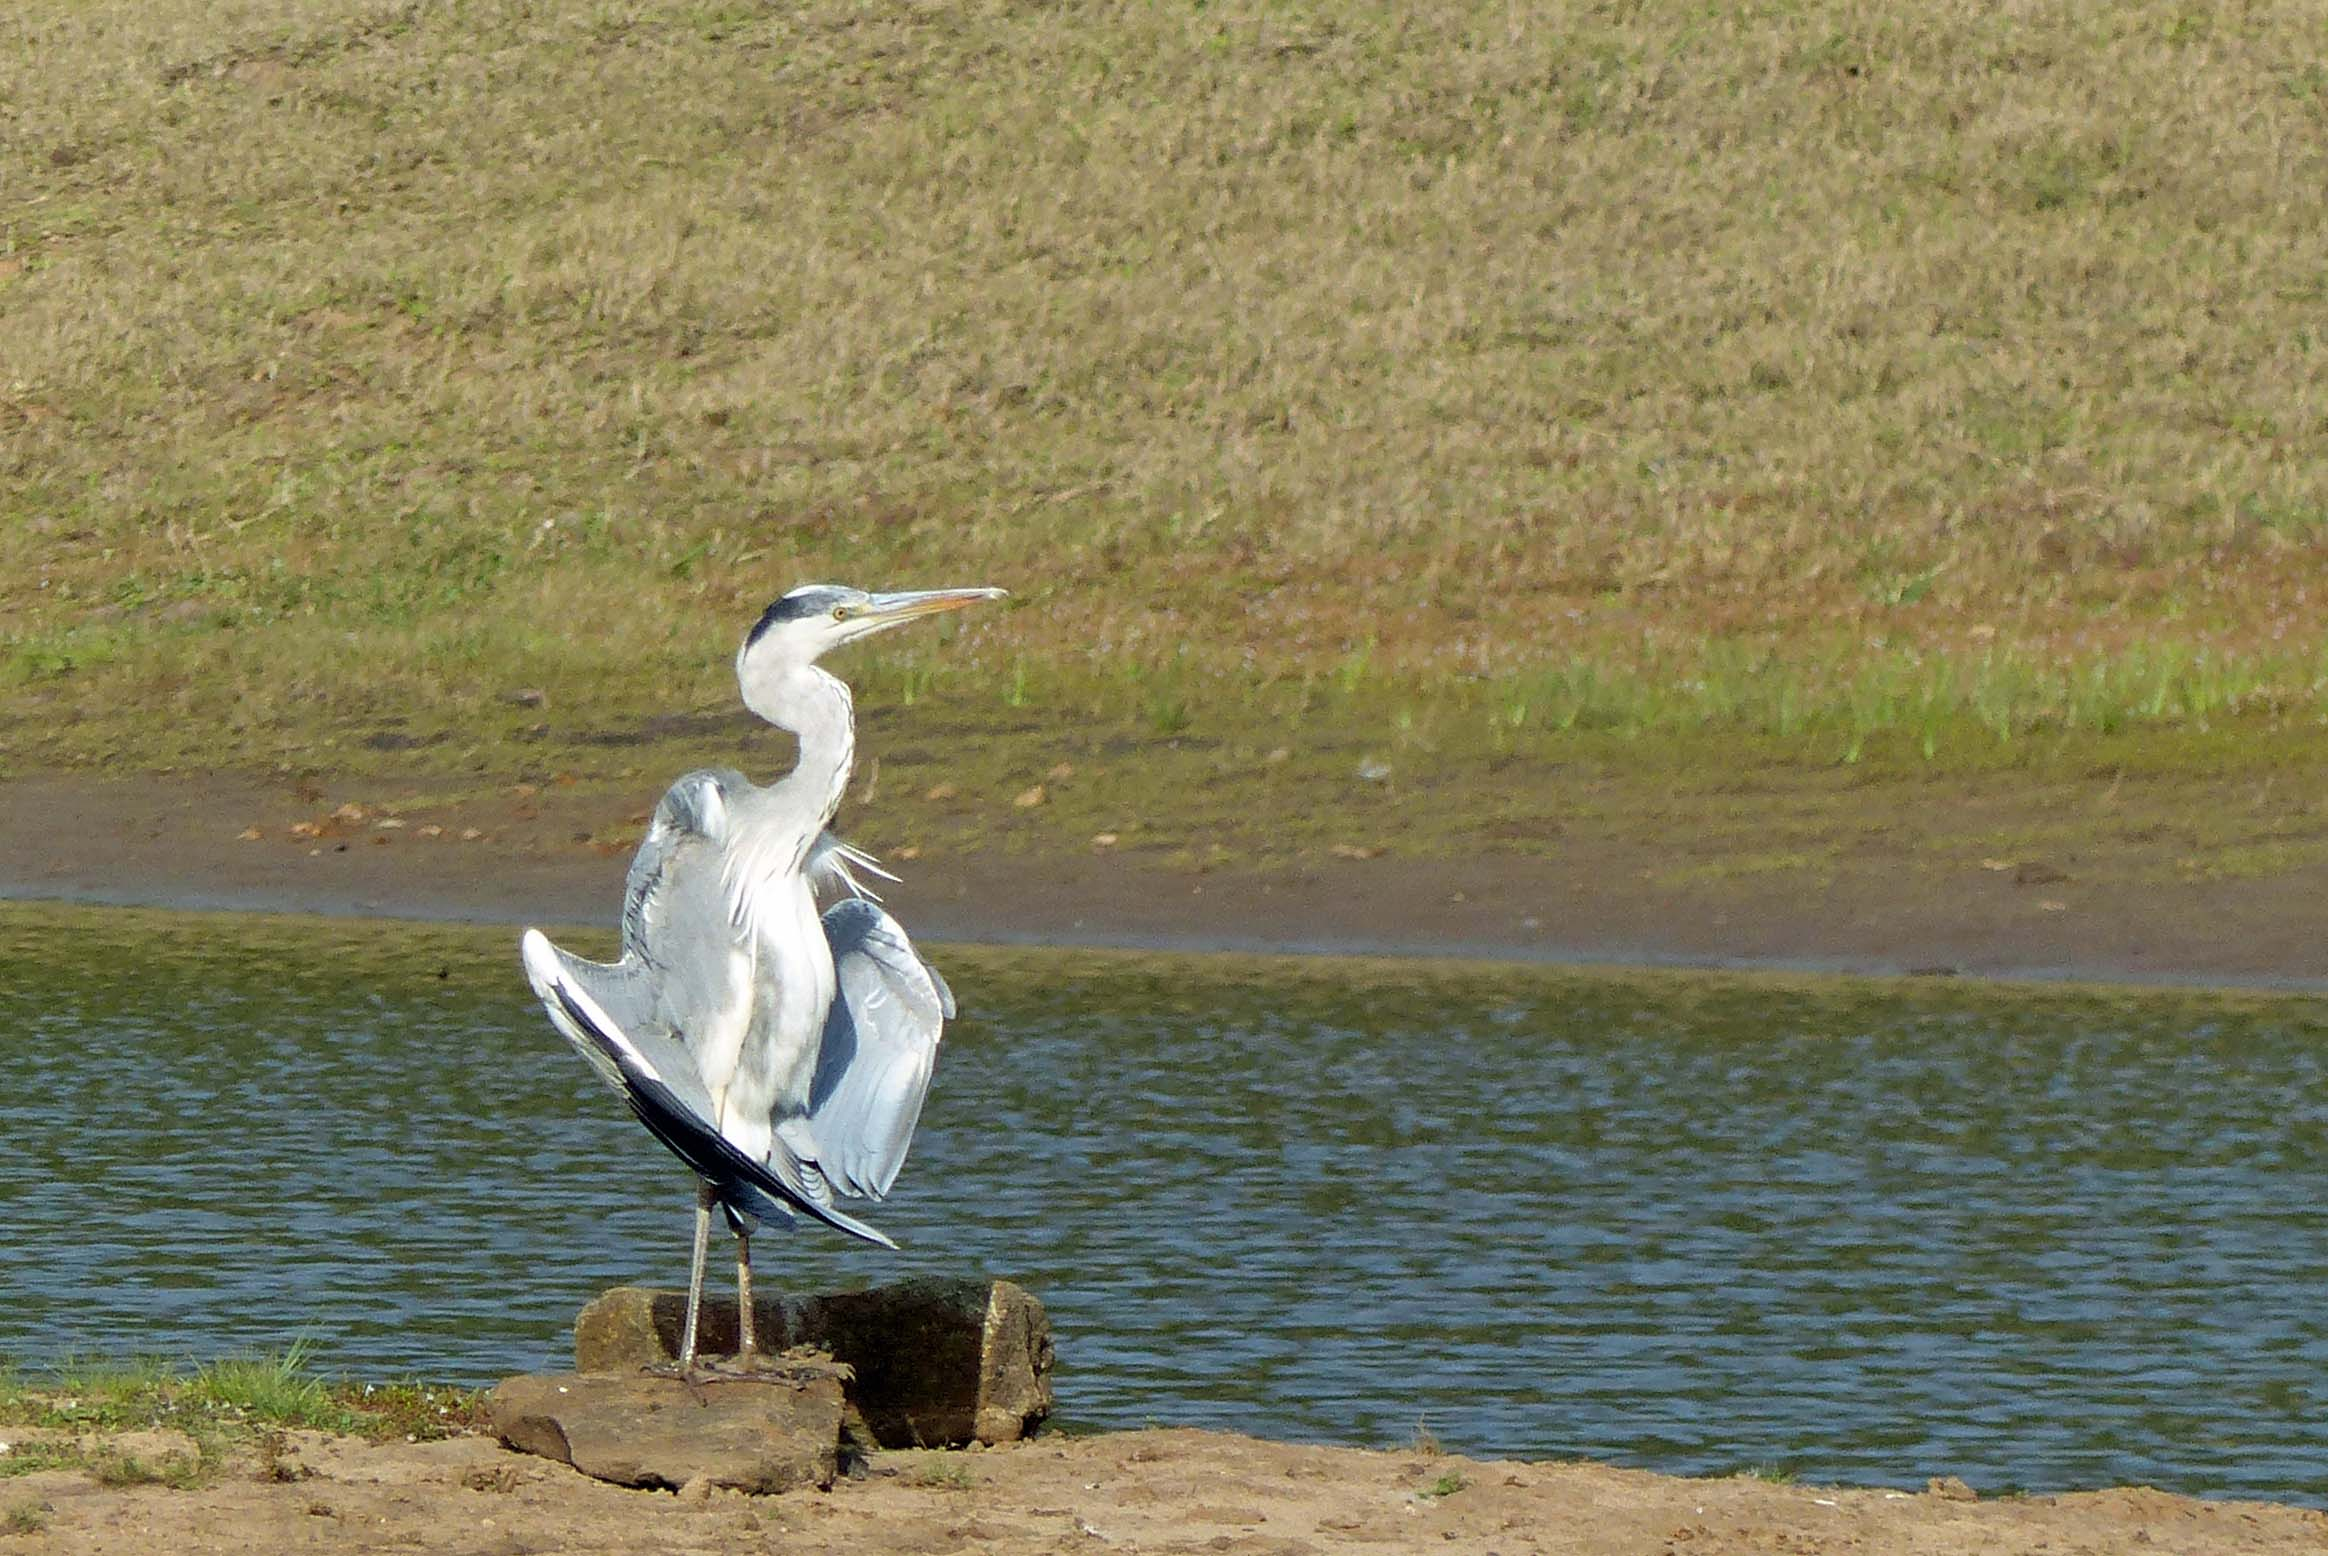 Pale grey bird with wings outstretched, by water